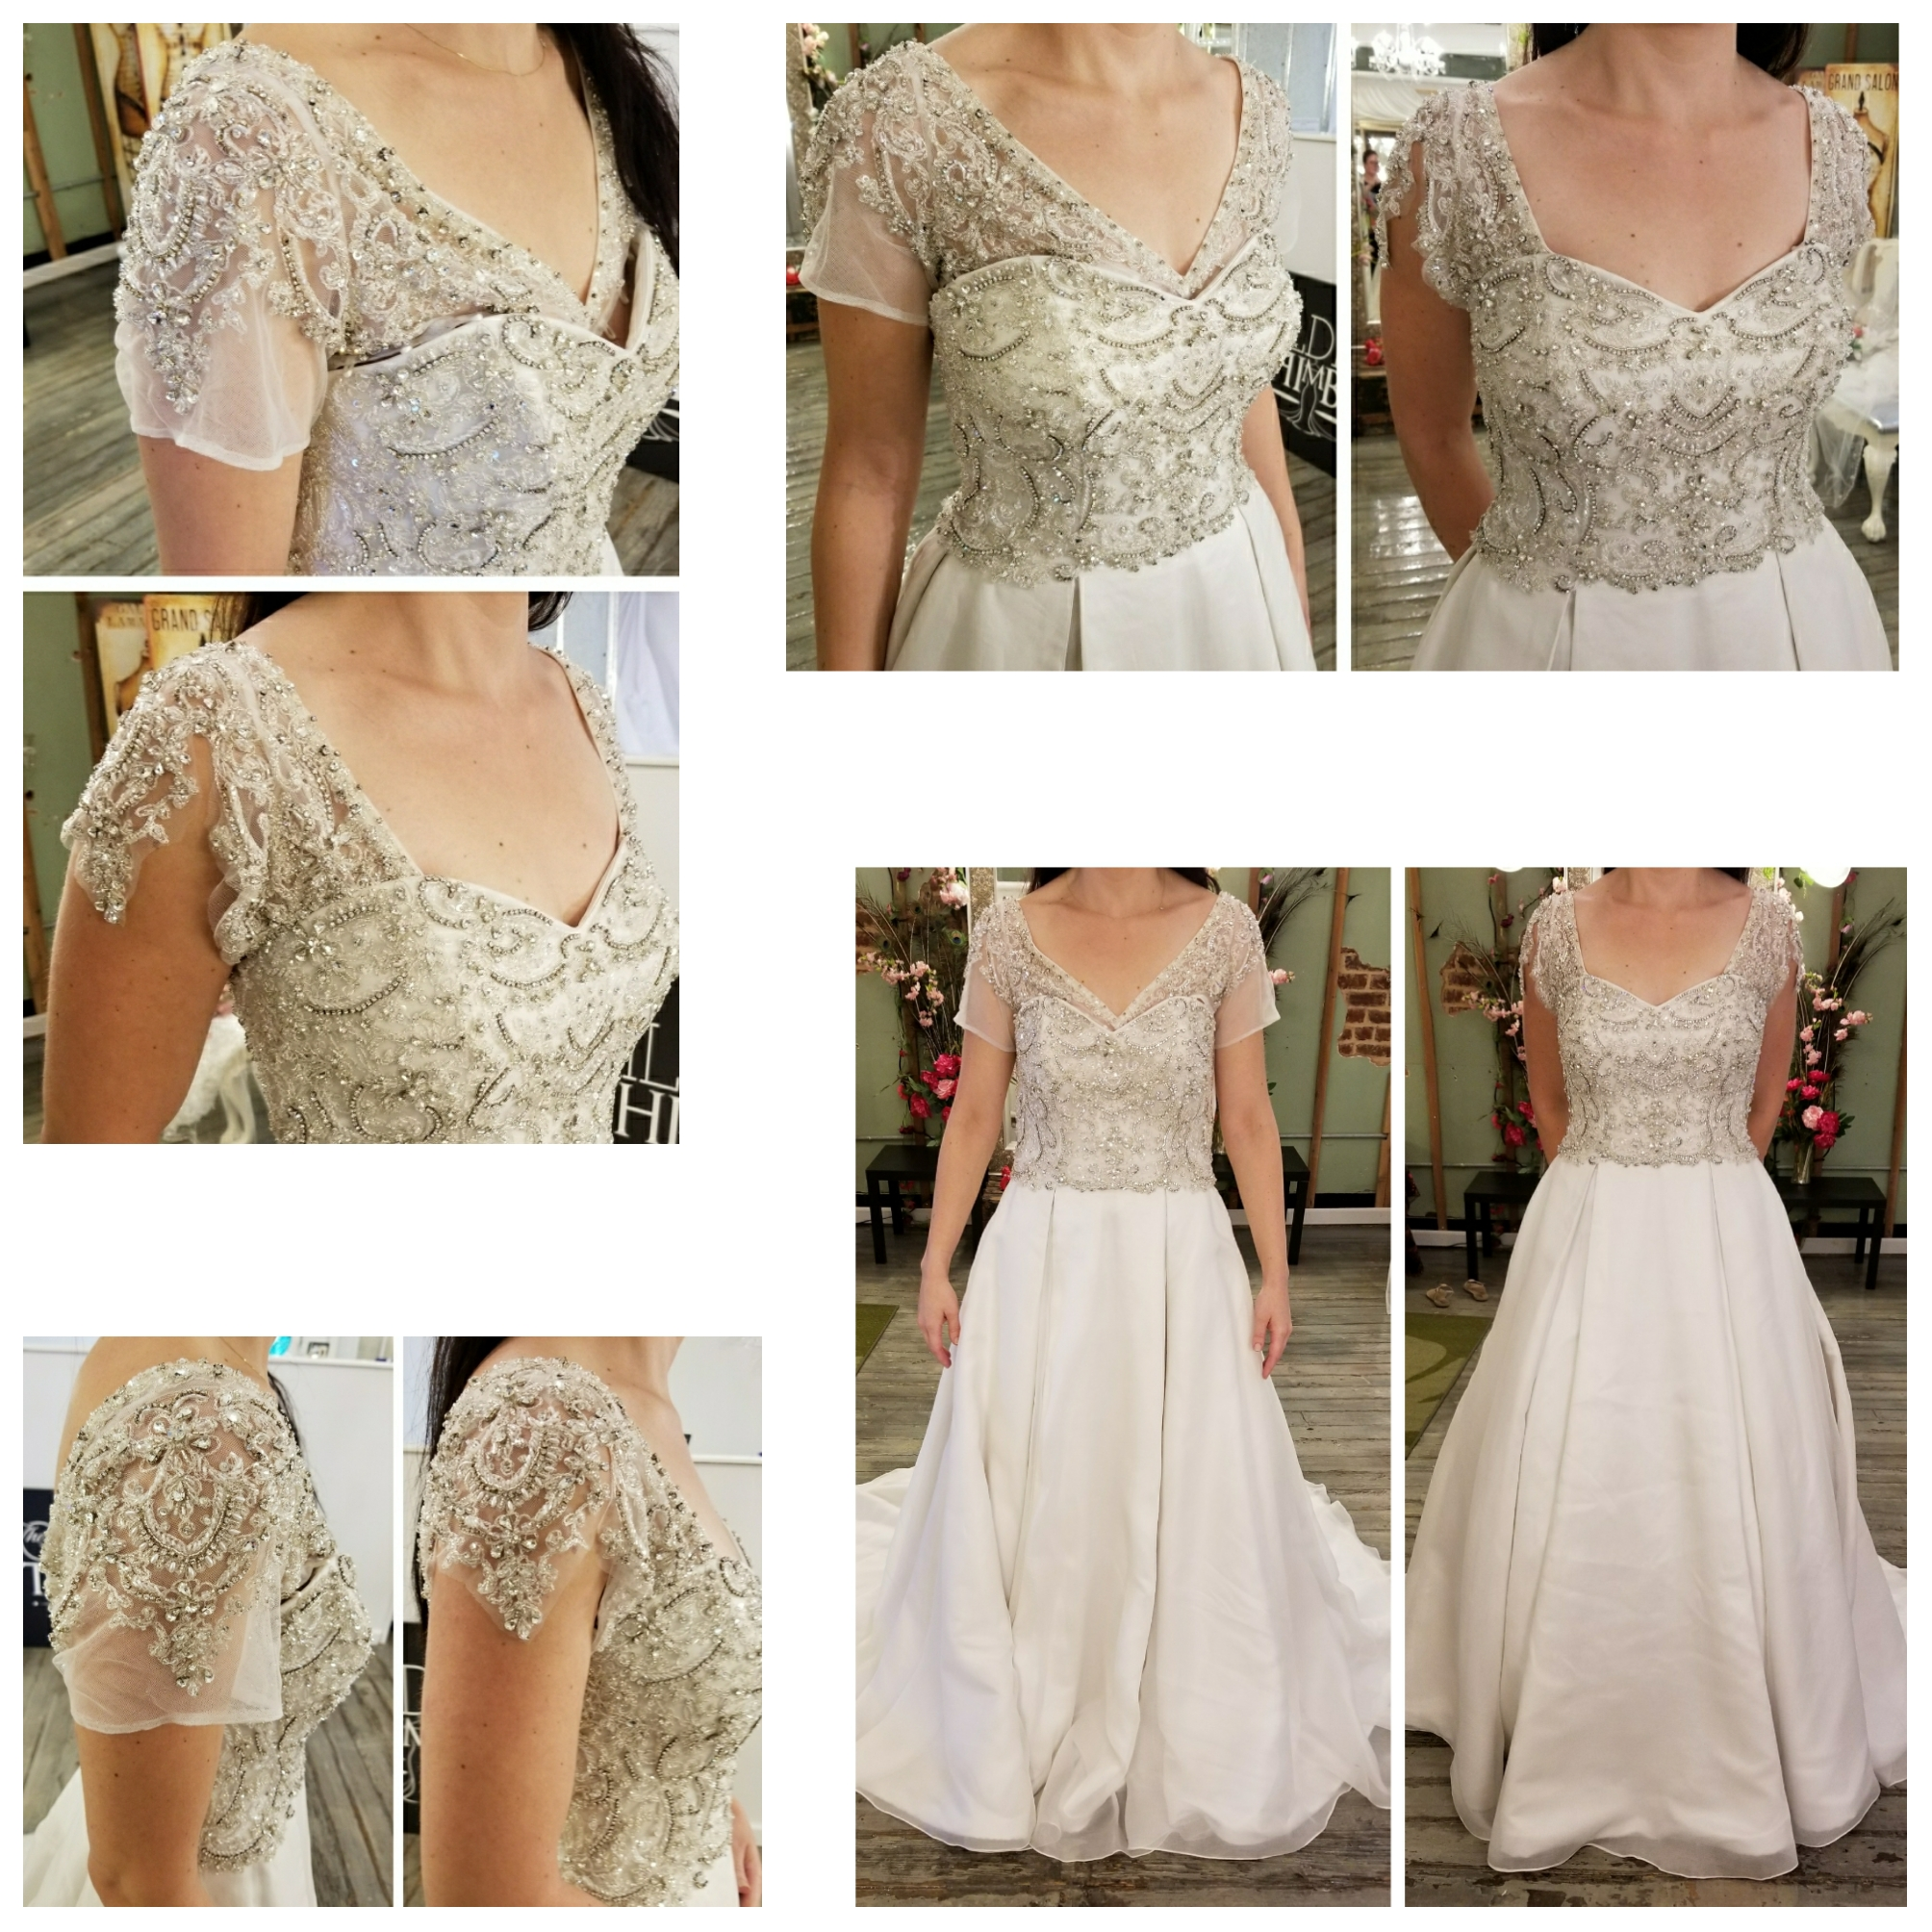 Wedding Gown Alterations Cap Sleeves The Gilded Thimble